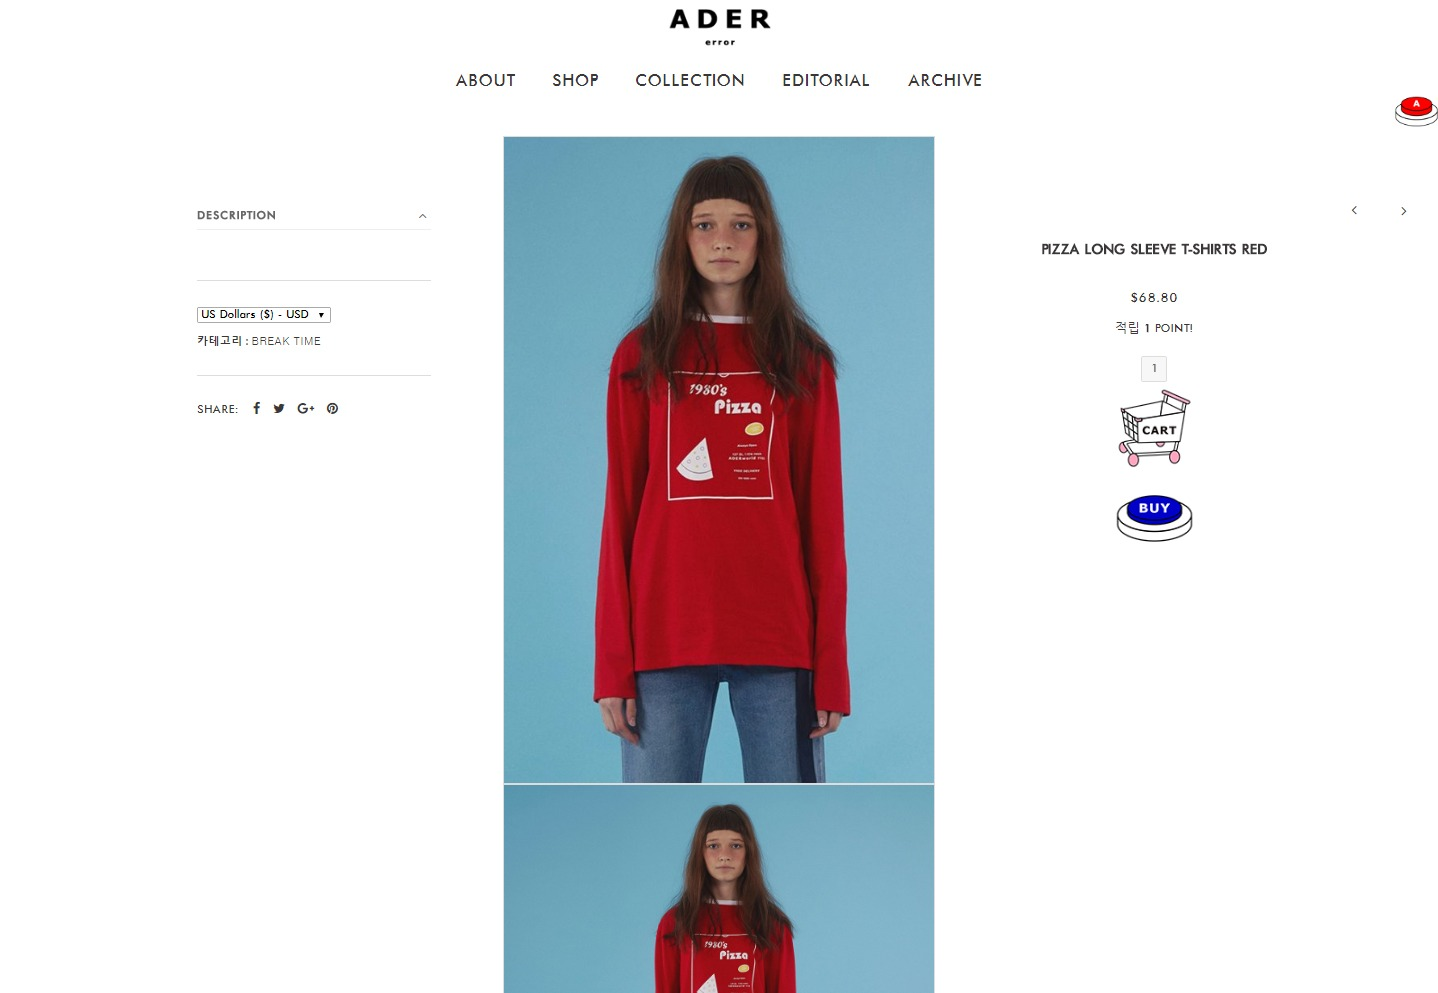 Pizza long sleeve t shirts red   Ader error